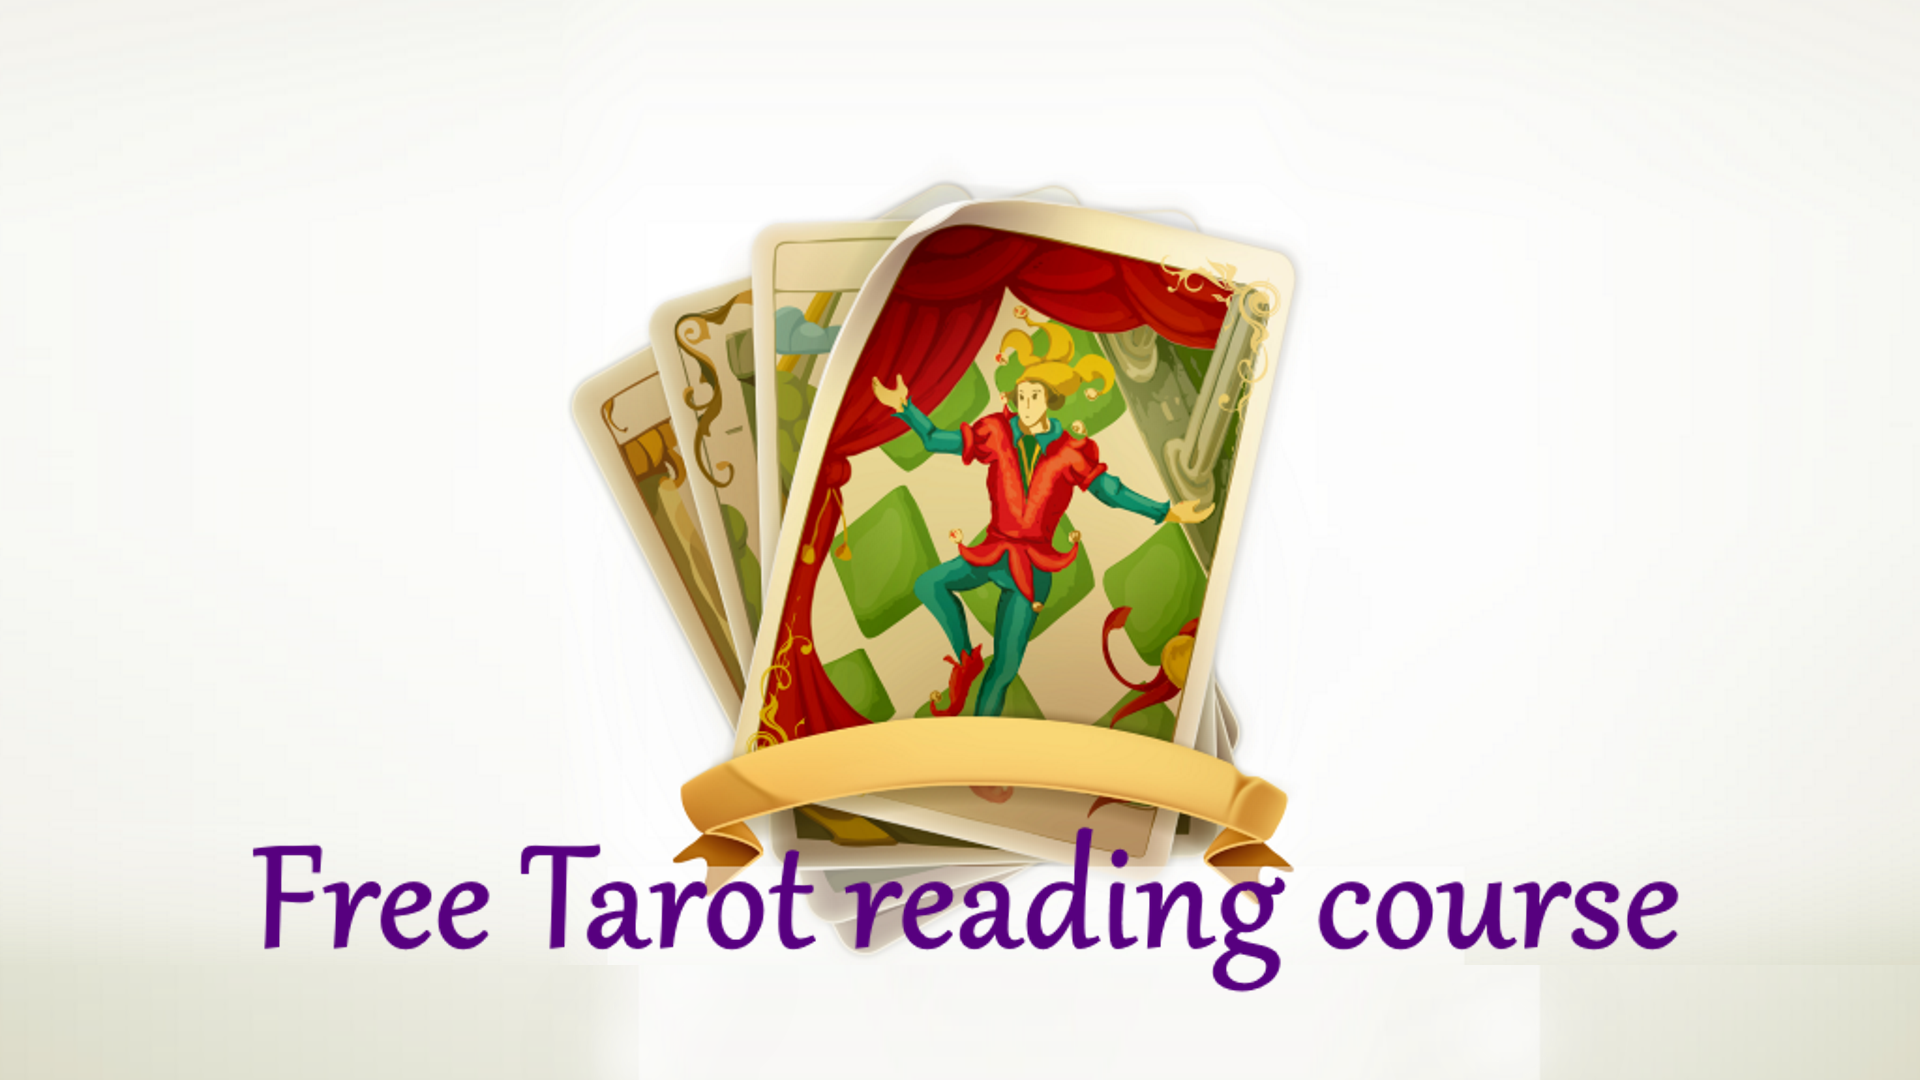 Get Tarot card reading! Online tarot plus psychic read - Microsoft Store